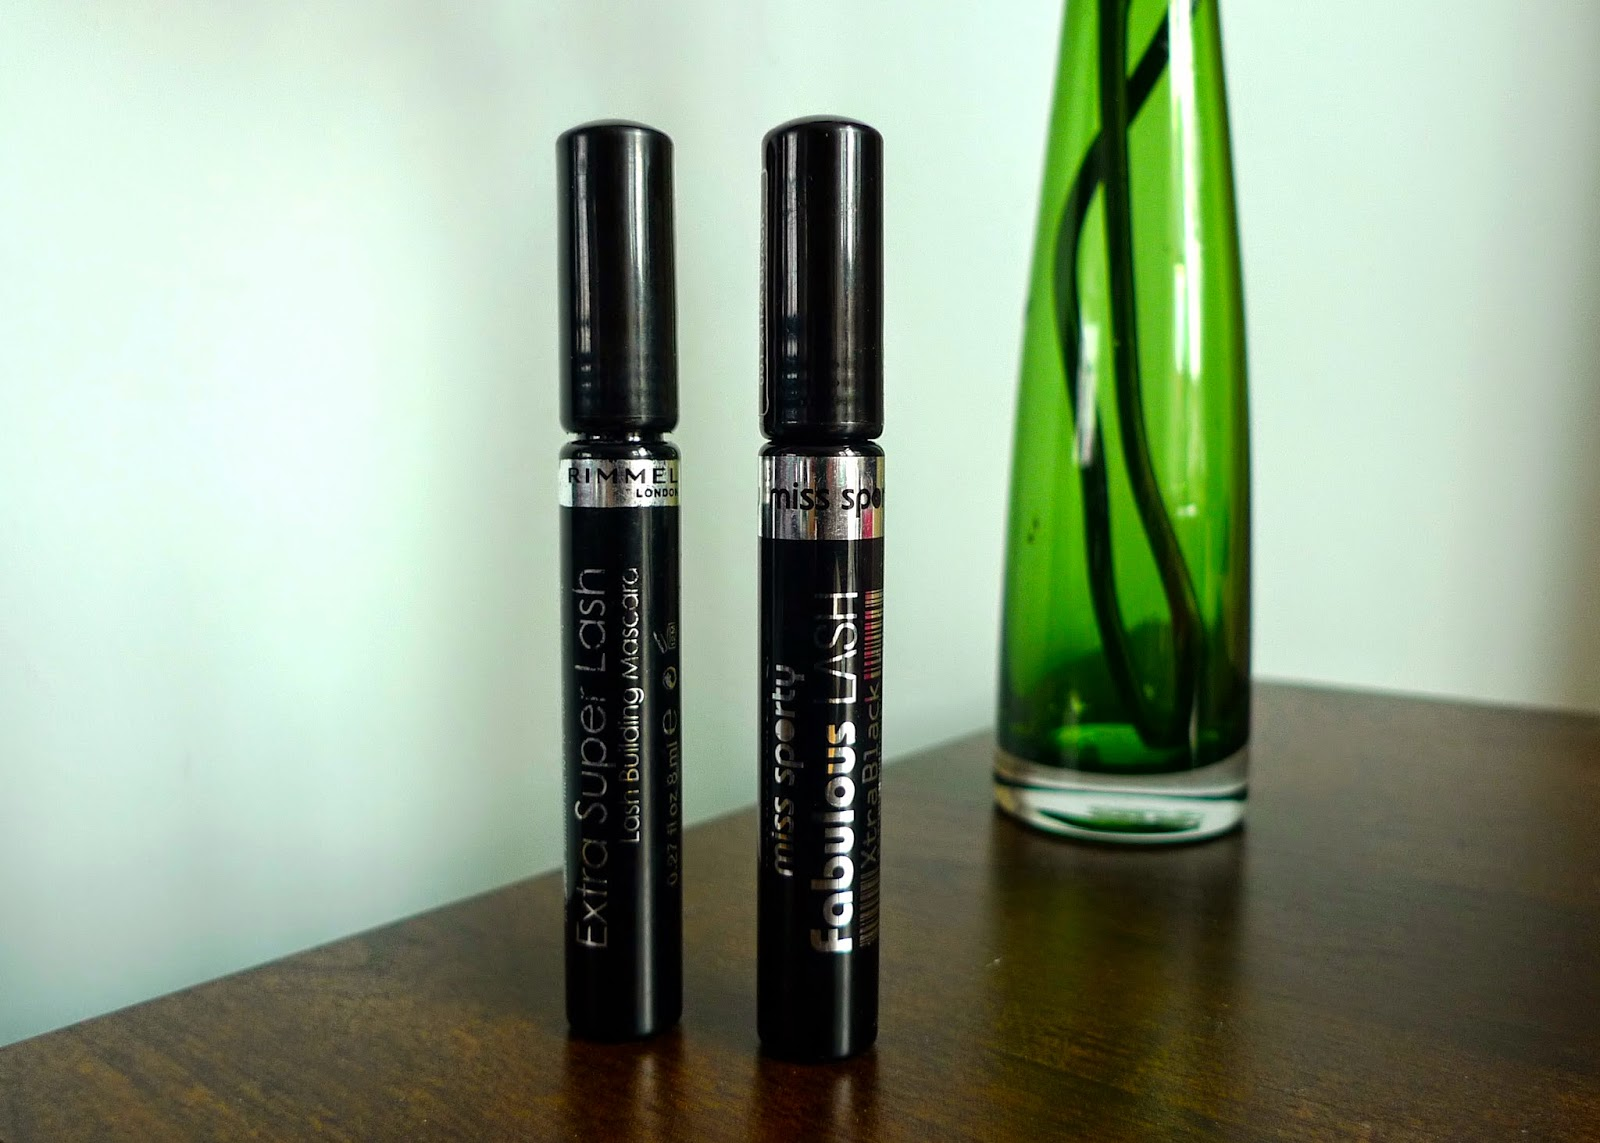 A review and comparison of Miss Sporty Fabulous Lash Mascara and Rimmel's Super Lash Mascara